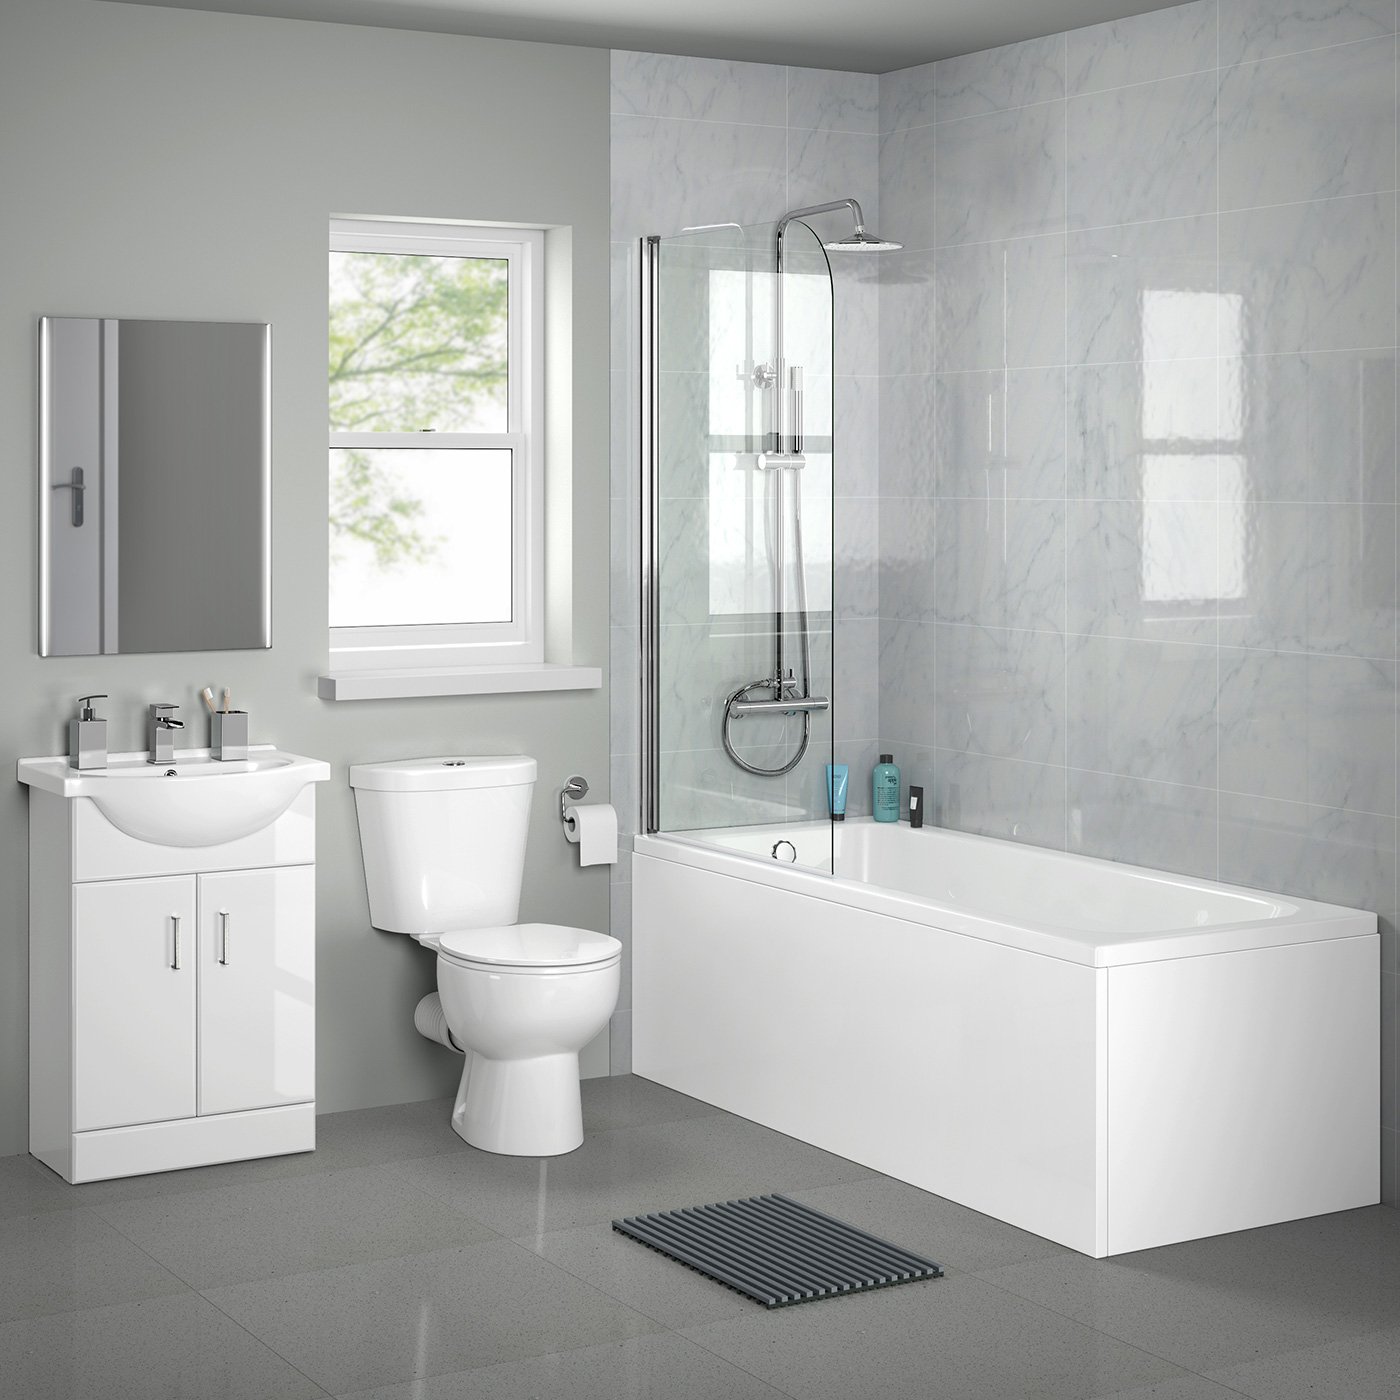 Cheap Bathroom Vanity Suites Bathroom Suites Stylish And Affordable Plumbworld Modern